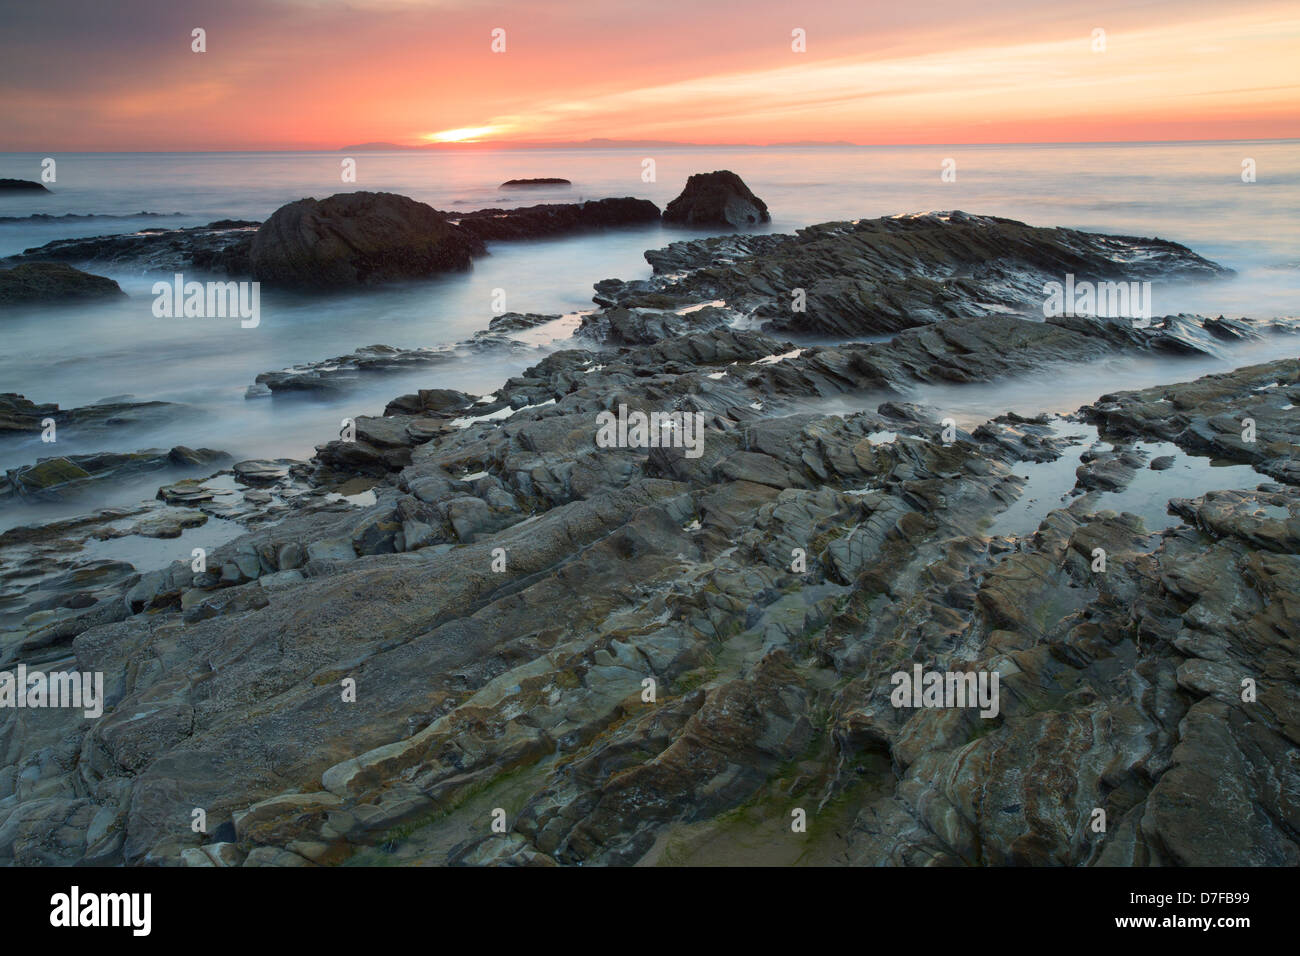 Sonnenuntergang am Crystal Cove State Park, Newport Beach, Orange County, Kalifornien. Stockbild